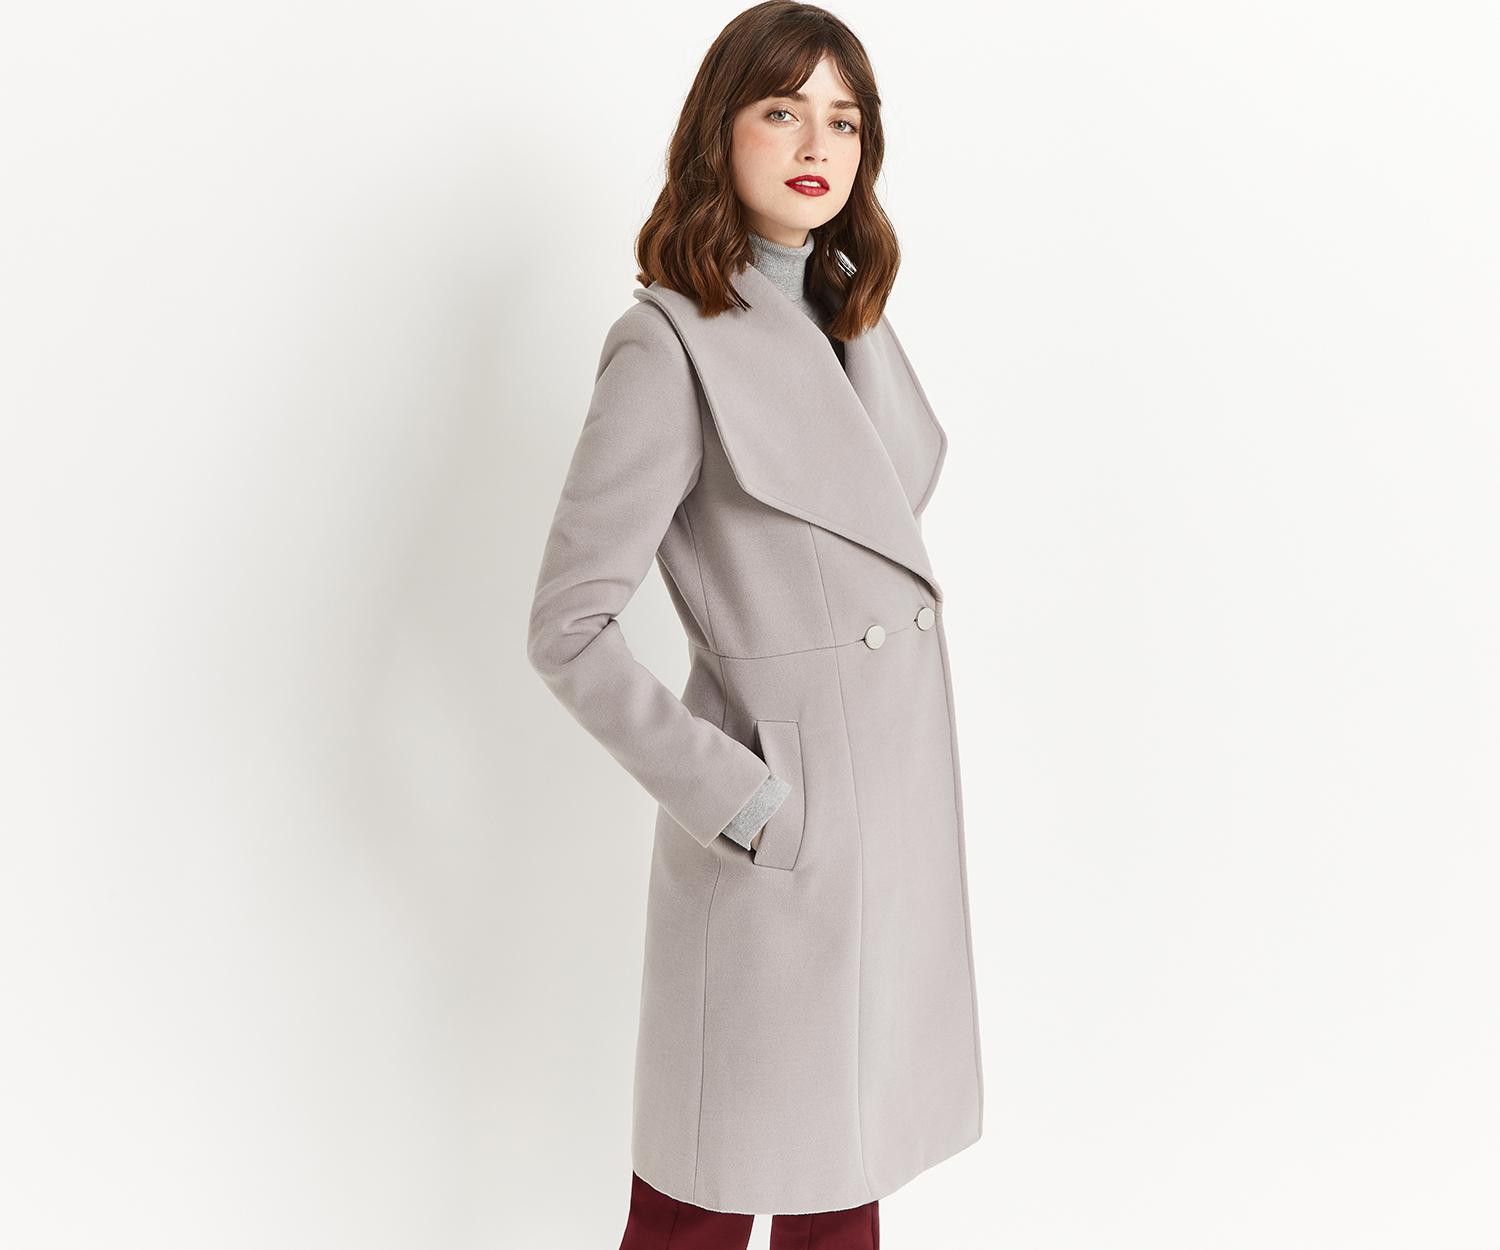 8bc27ad76875 Oasis Lily Premium Skater Coat in Gray - Lyst